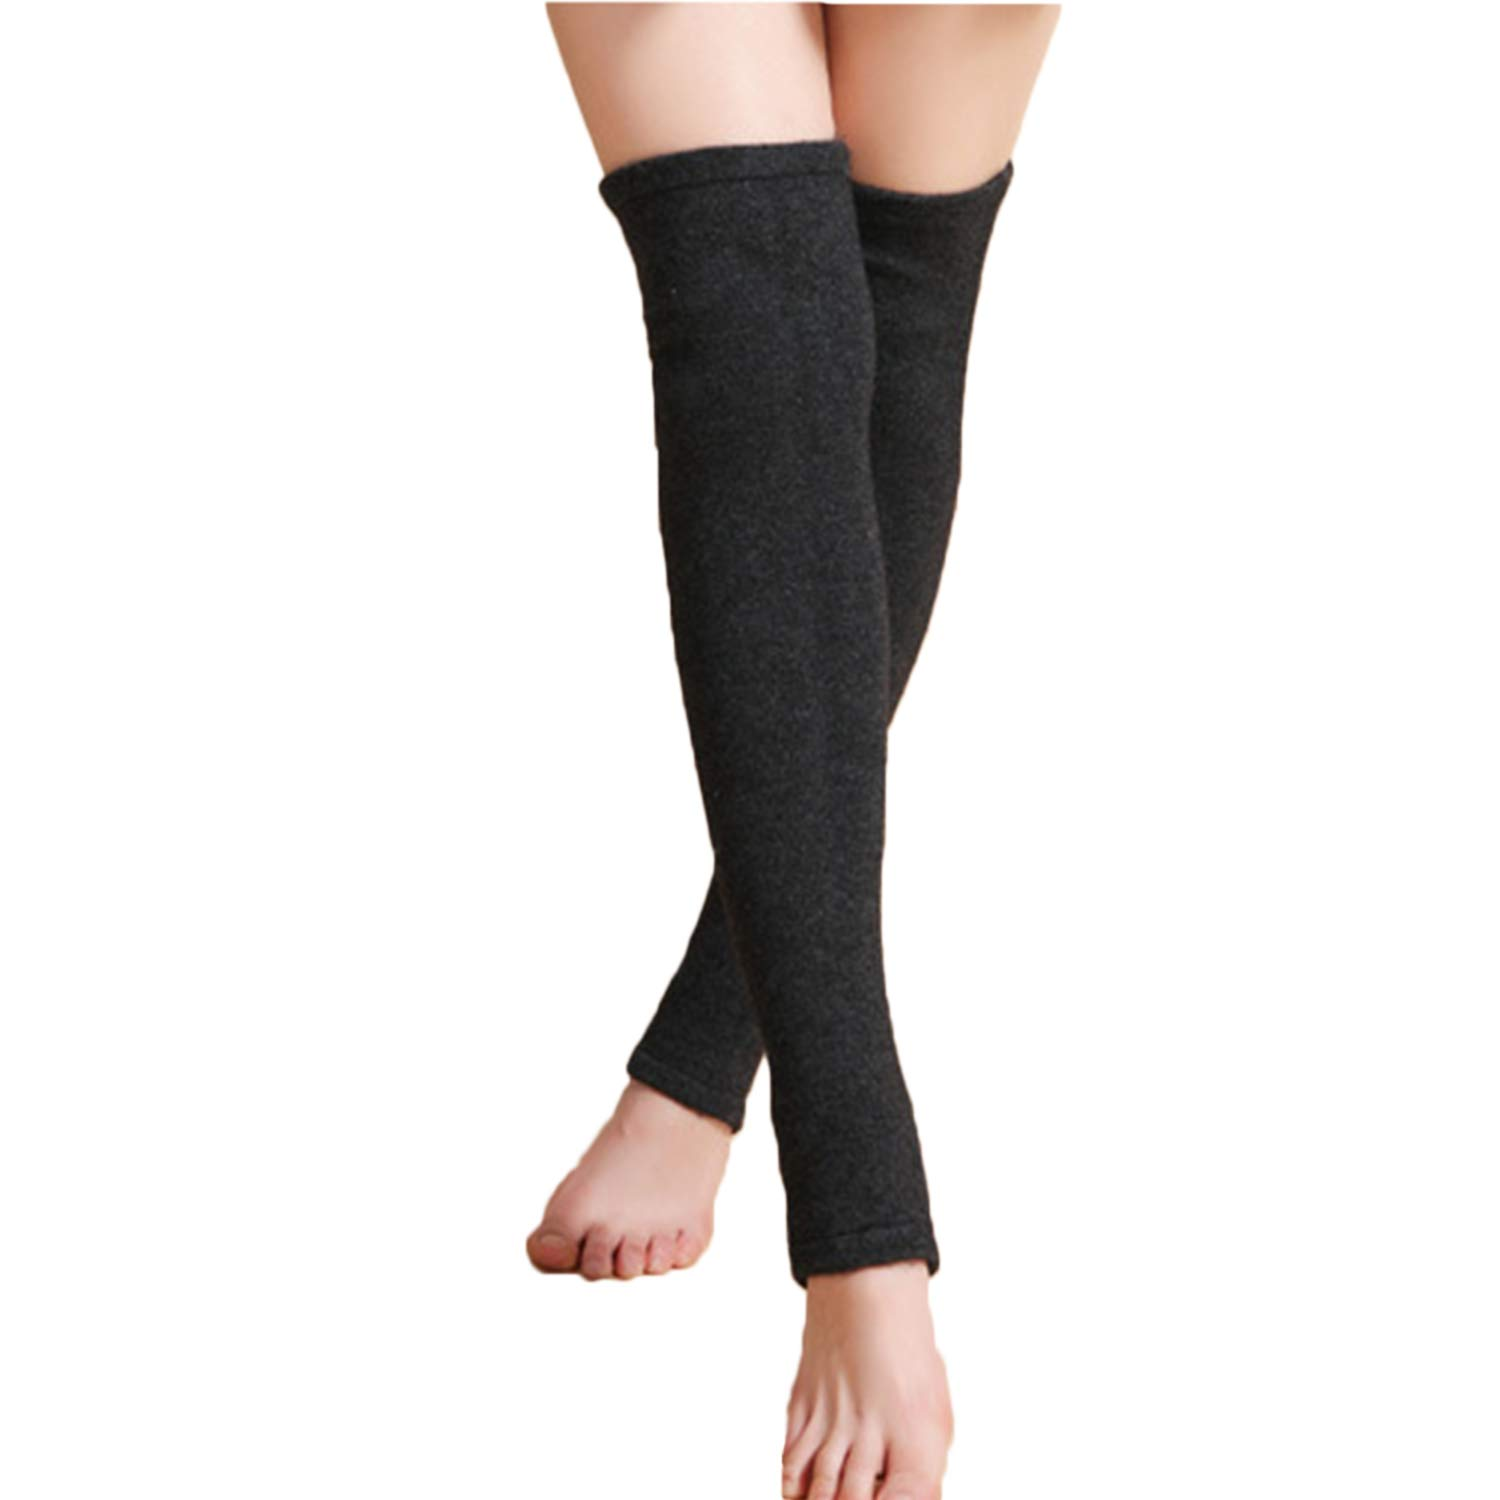 Womens Over Knee Cashmere Wool Sleeve Leg Warmers Covers Winter Leg Long Compression Sleeves Arthritis Knee Thigh Calf Shin Brace Support for Sports Training Exercises